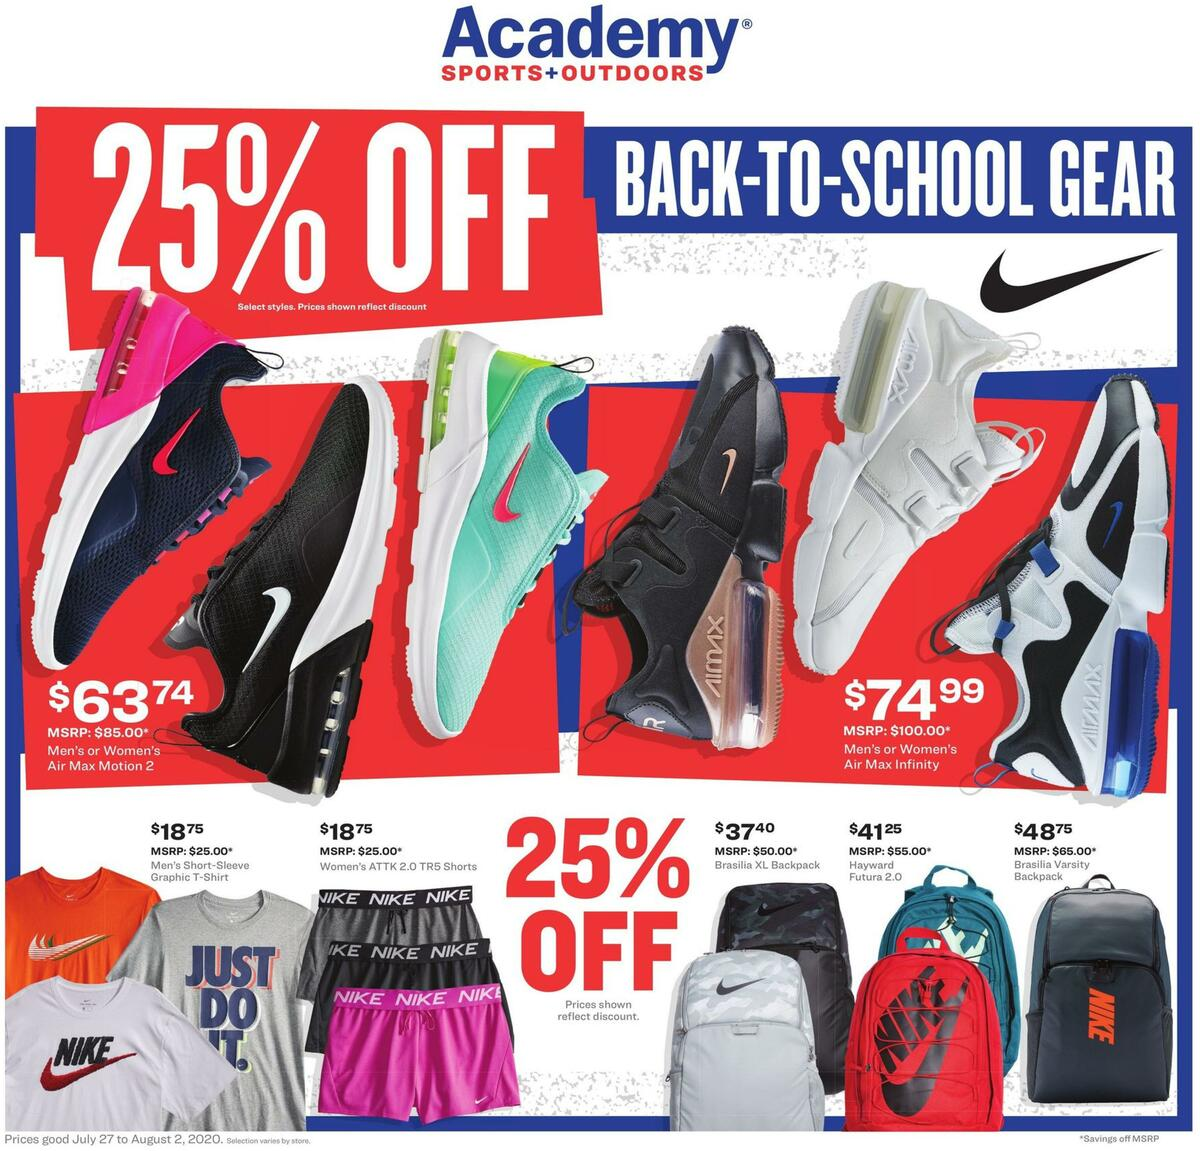 Academy Sports + Outdoors Weekly Ad from July 27